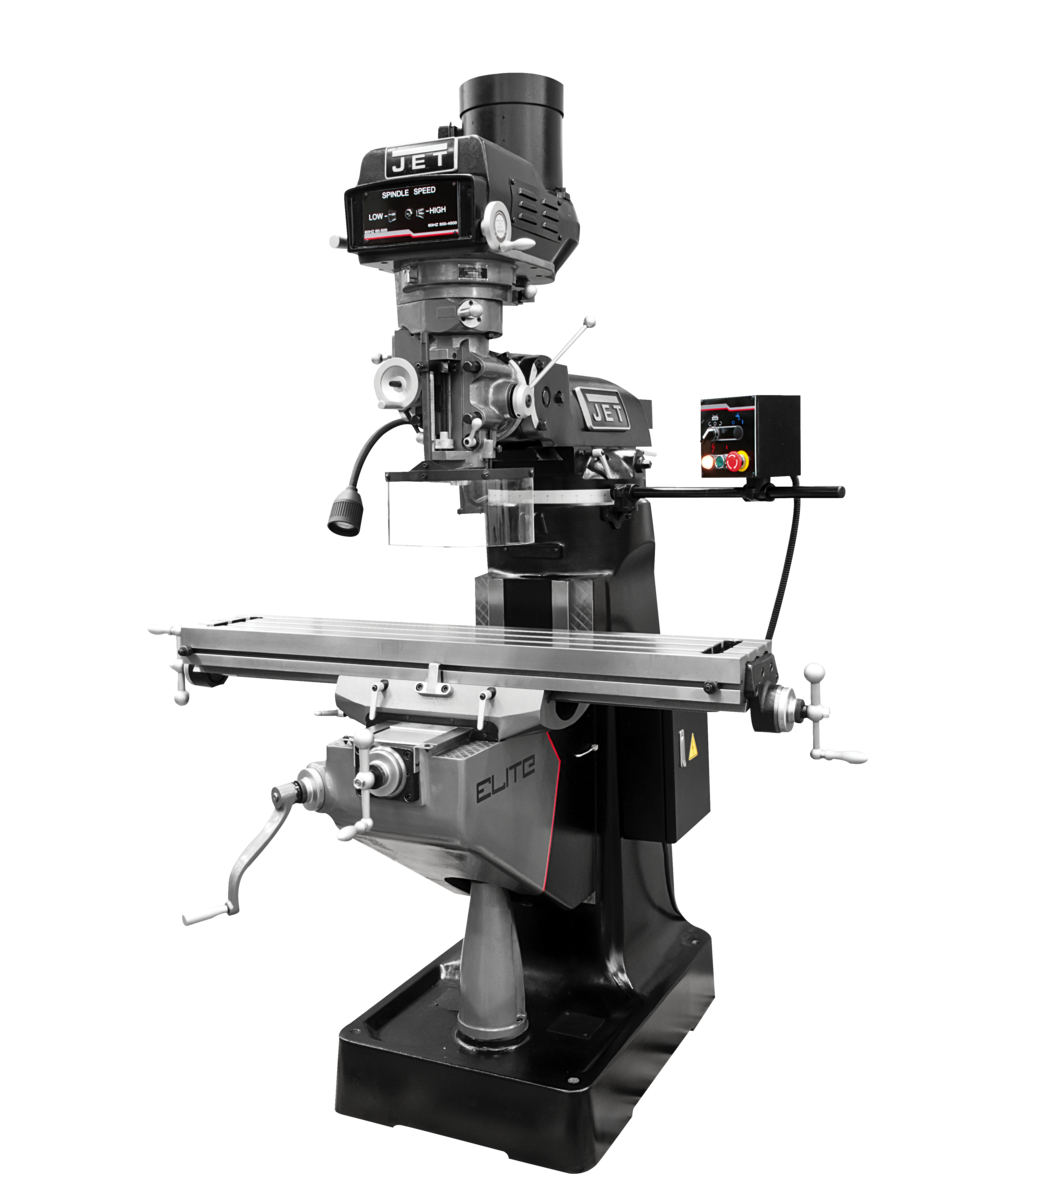 ETM-949 Mill with 3-Axis Newall DP700 (Quill) DRO and Servo X-Axis Powerfeed